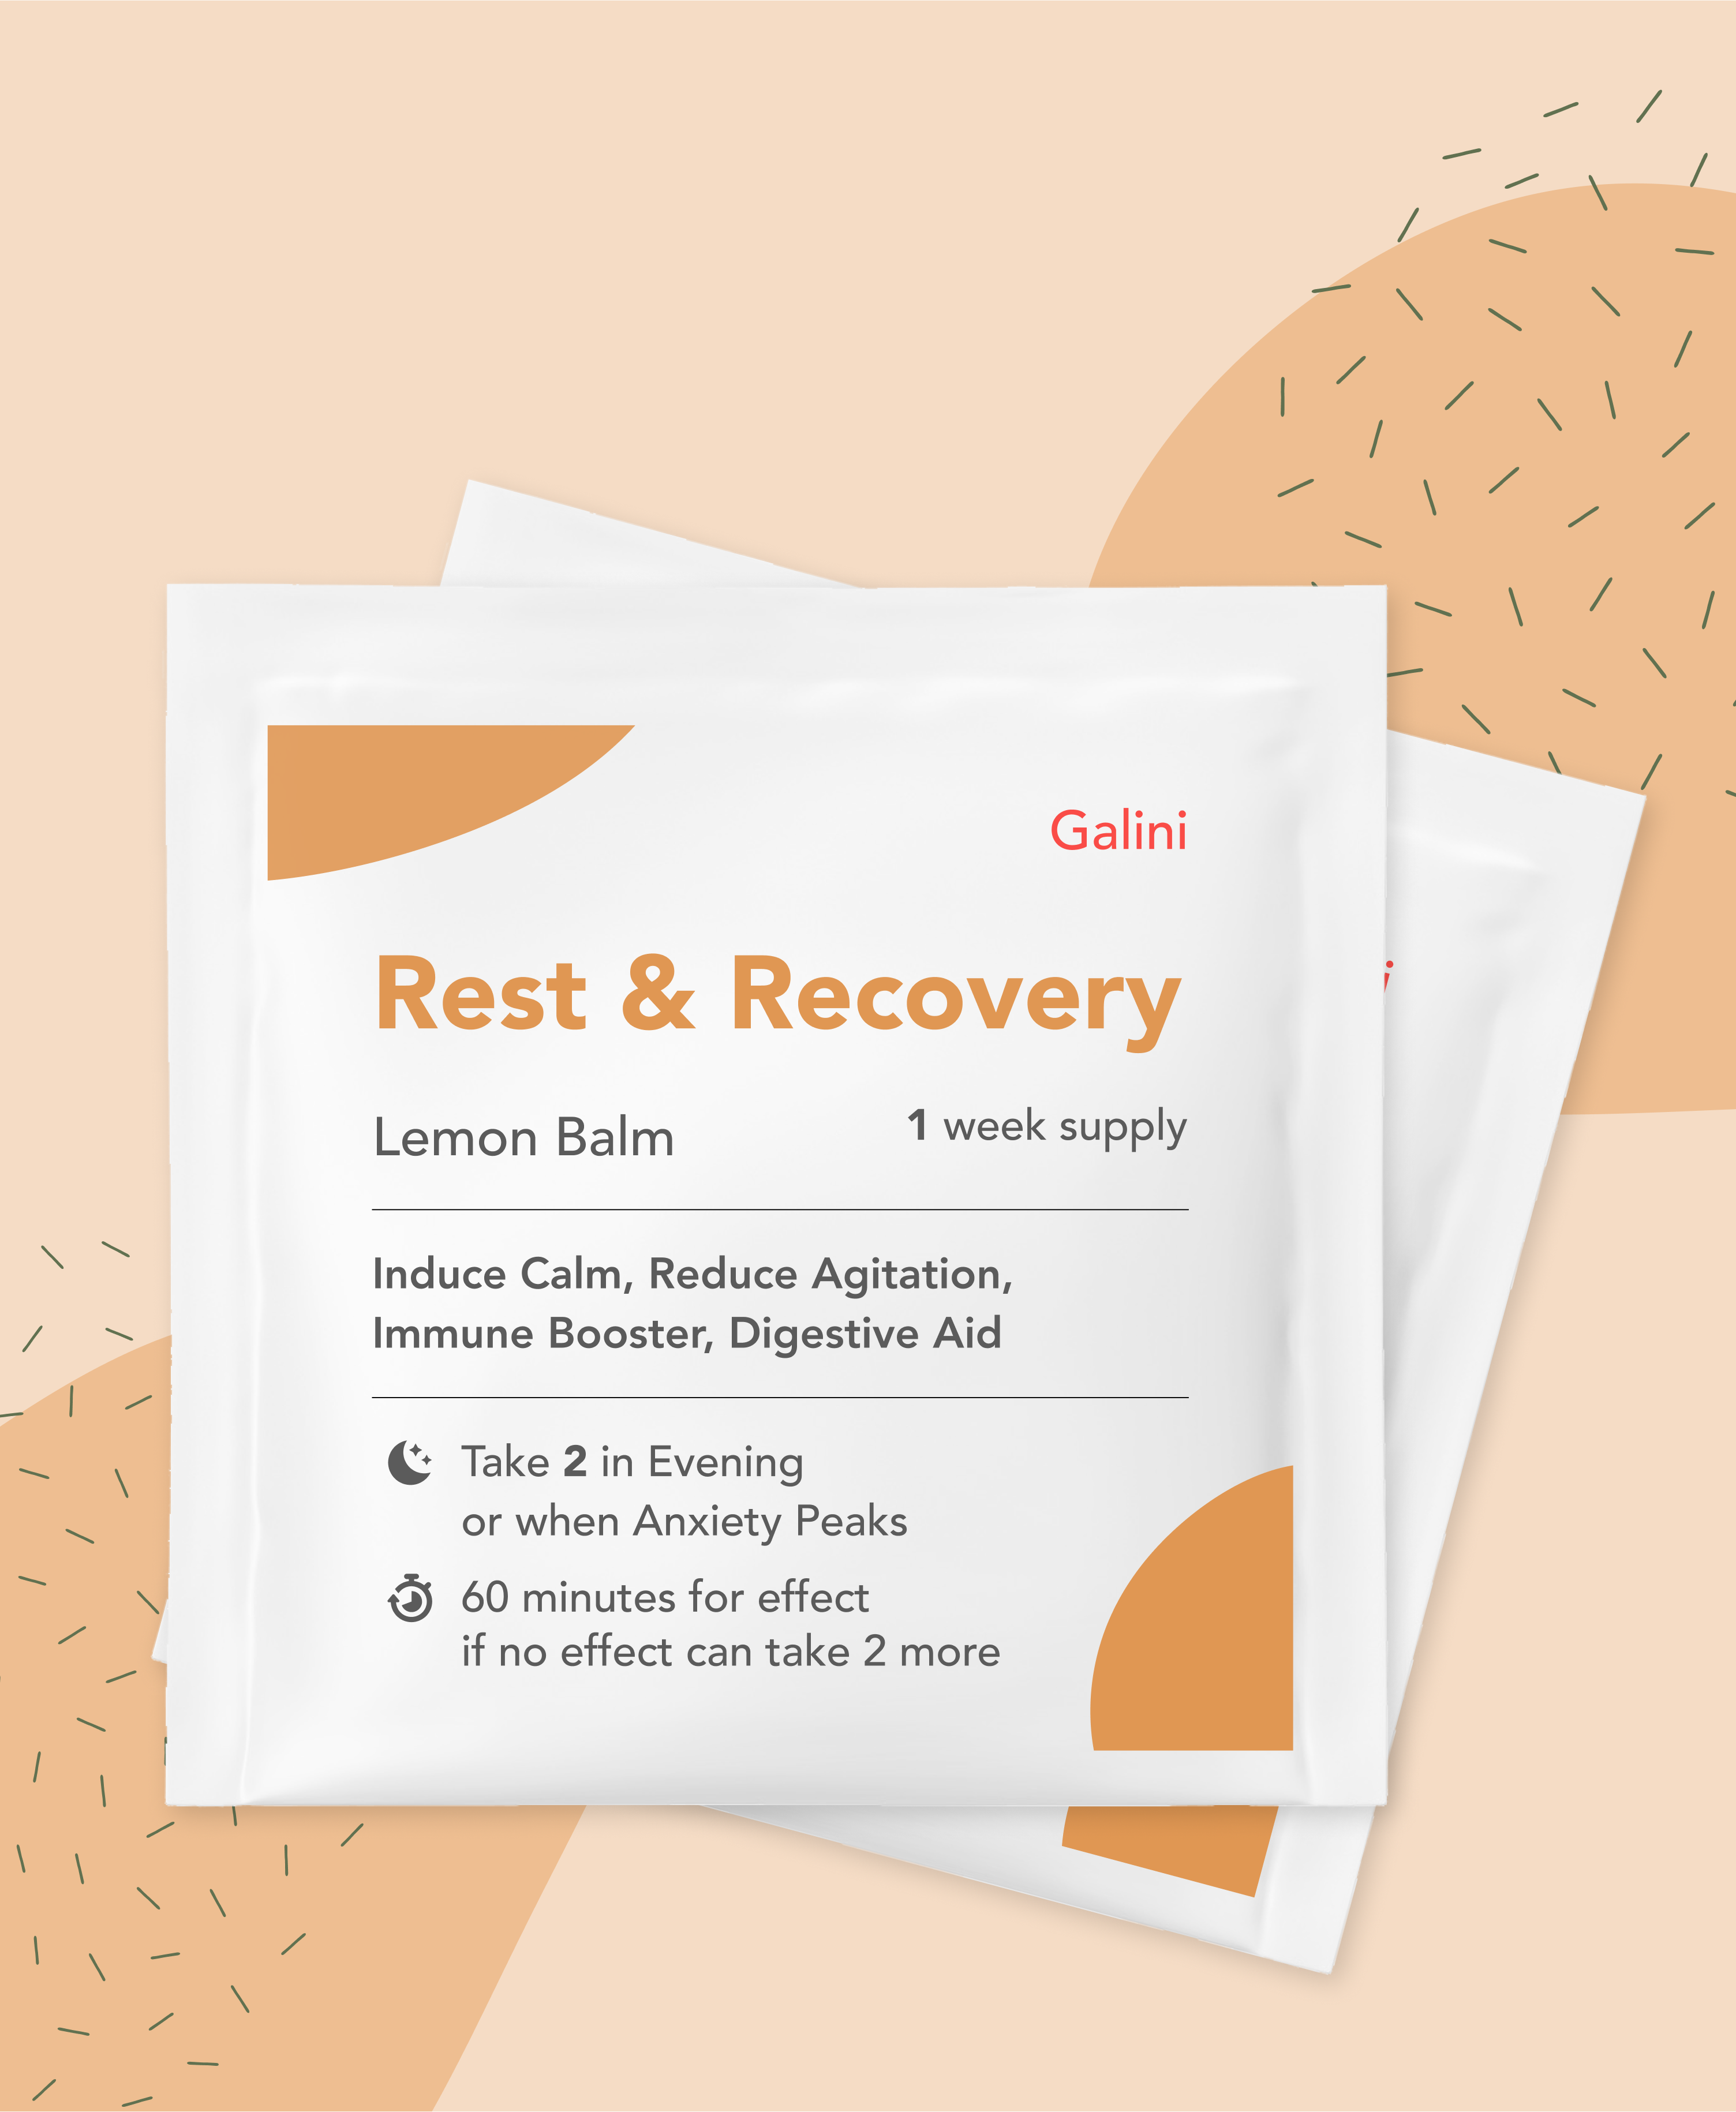 Rest and Recovery supplement containing Lemon Balm